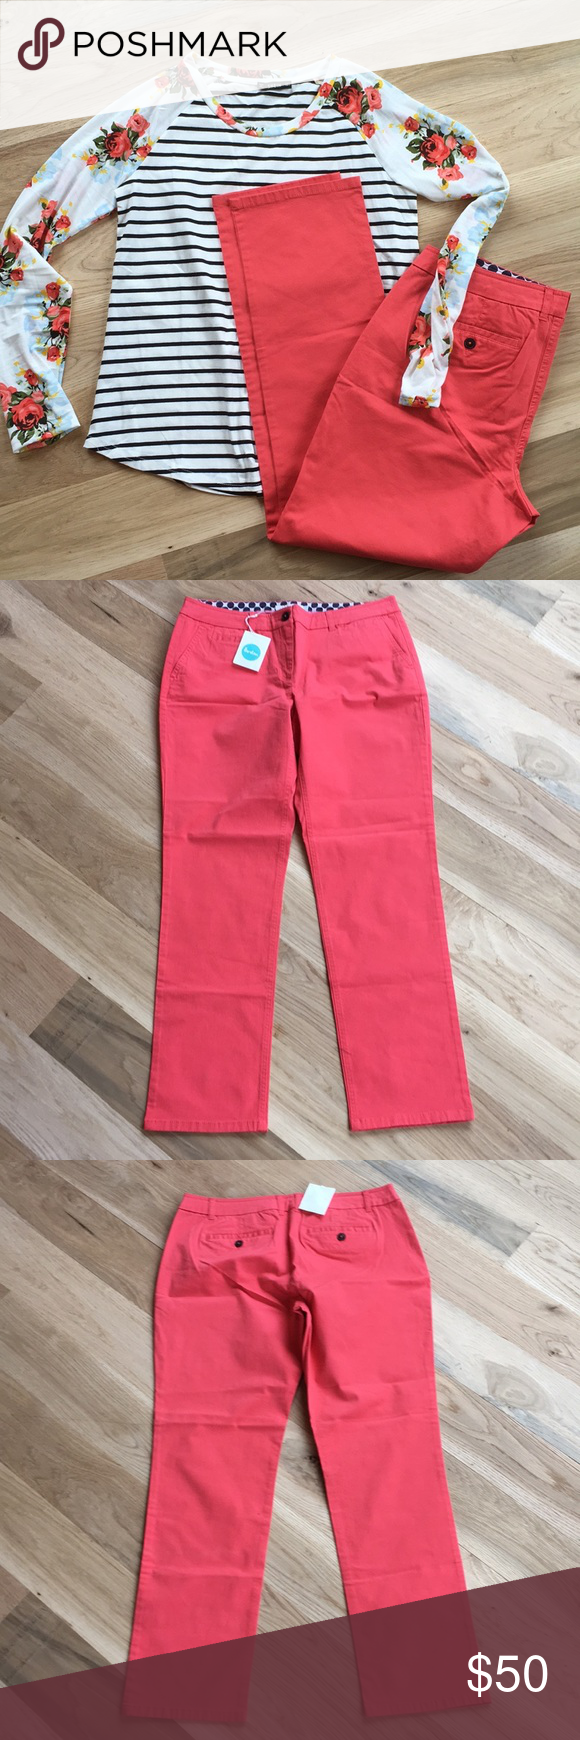 """Boden Coral Straight Leg Trousers 8 long Boden Coral Straight Leg Trousers Size 8 Long.  Waist 17"""", hips 21"""", rise 9.5"""" and inseam is 30"""". Boden Pants Trousers"""